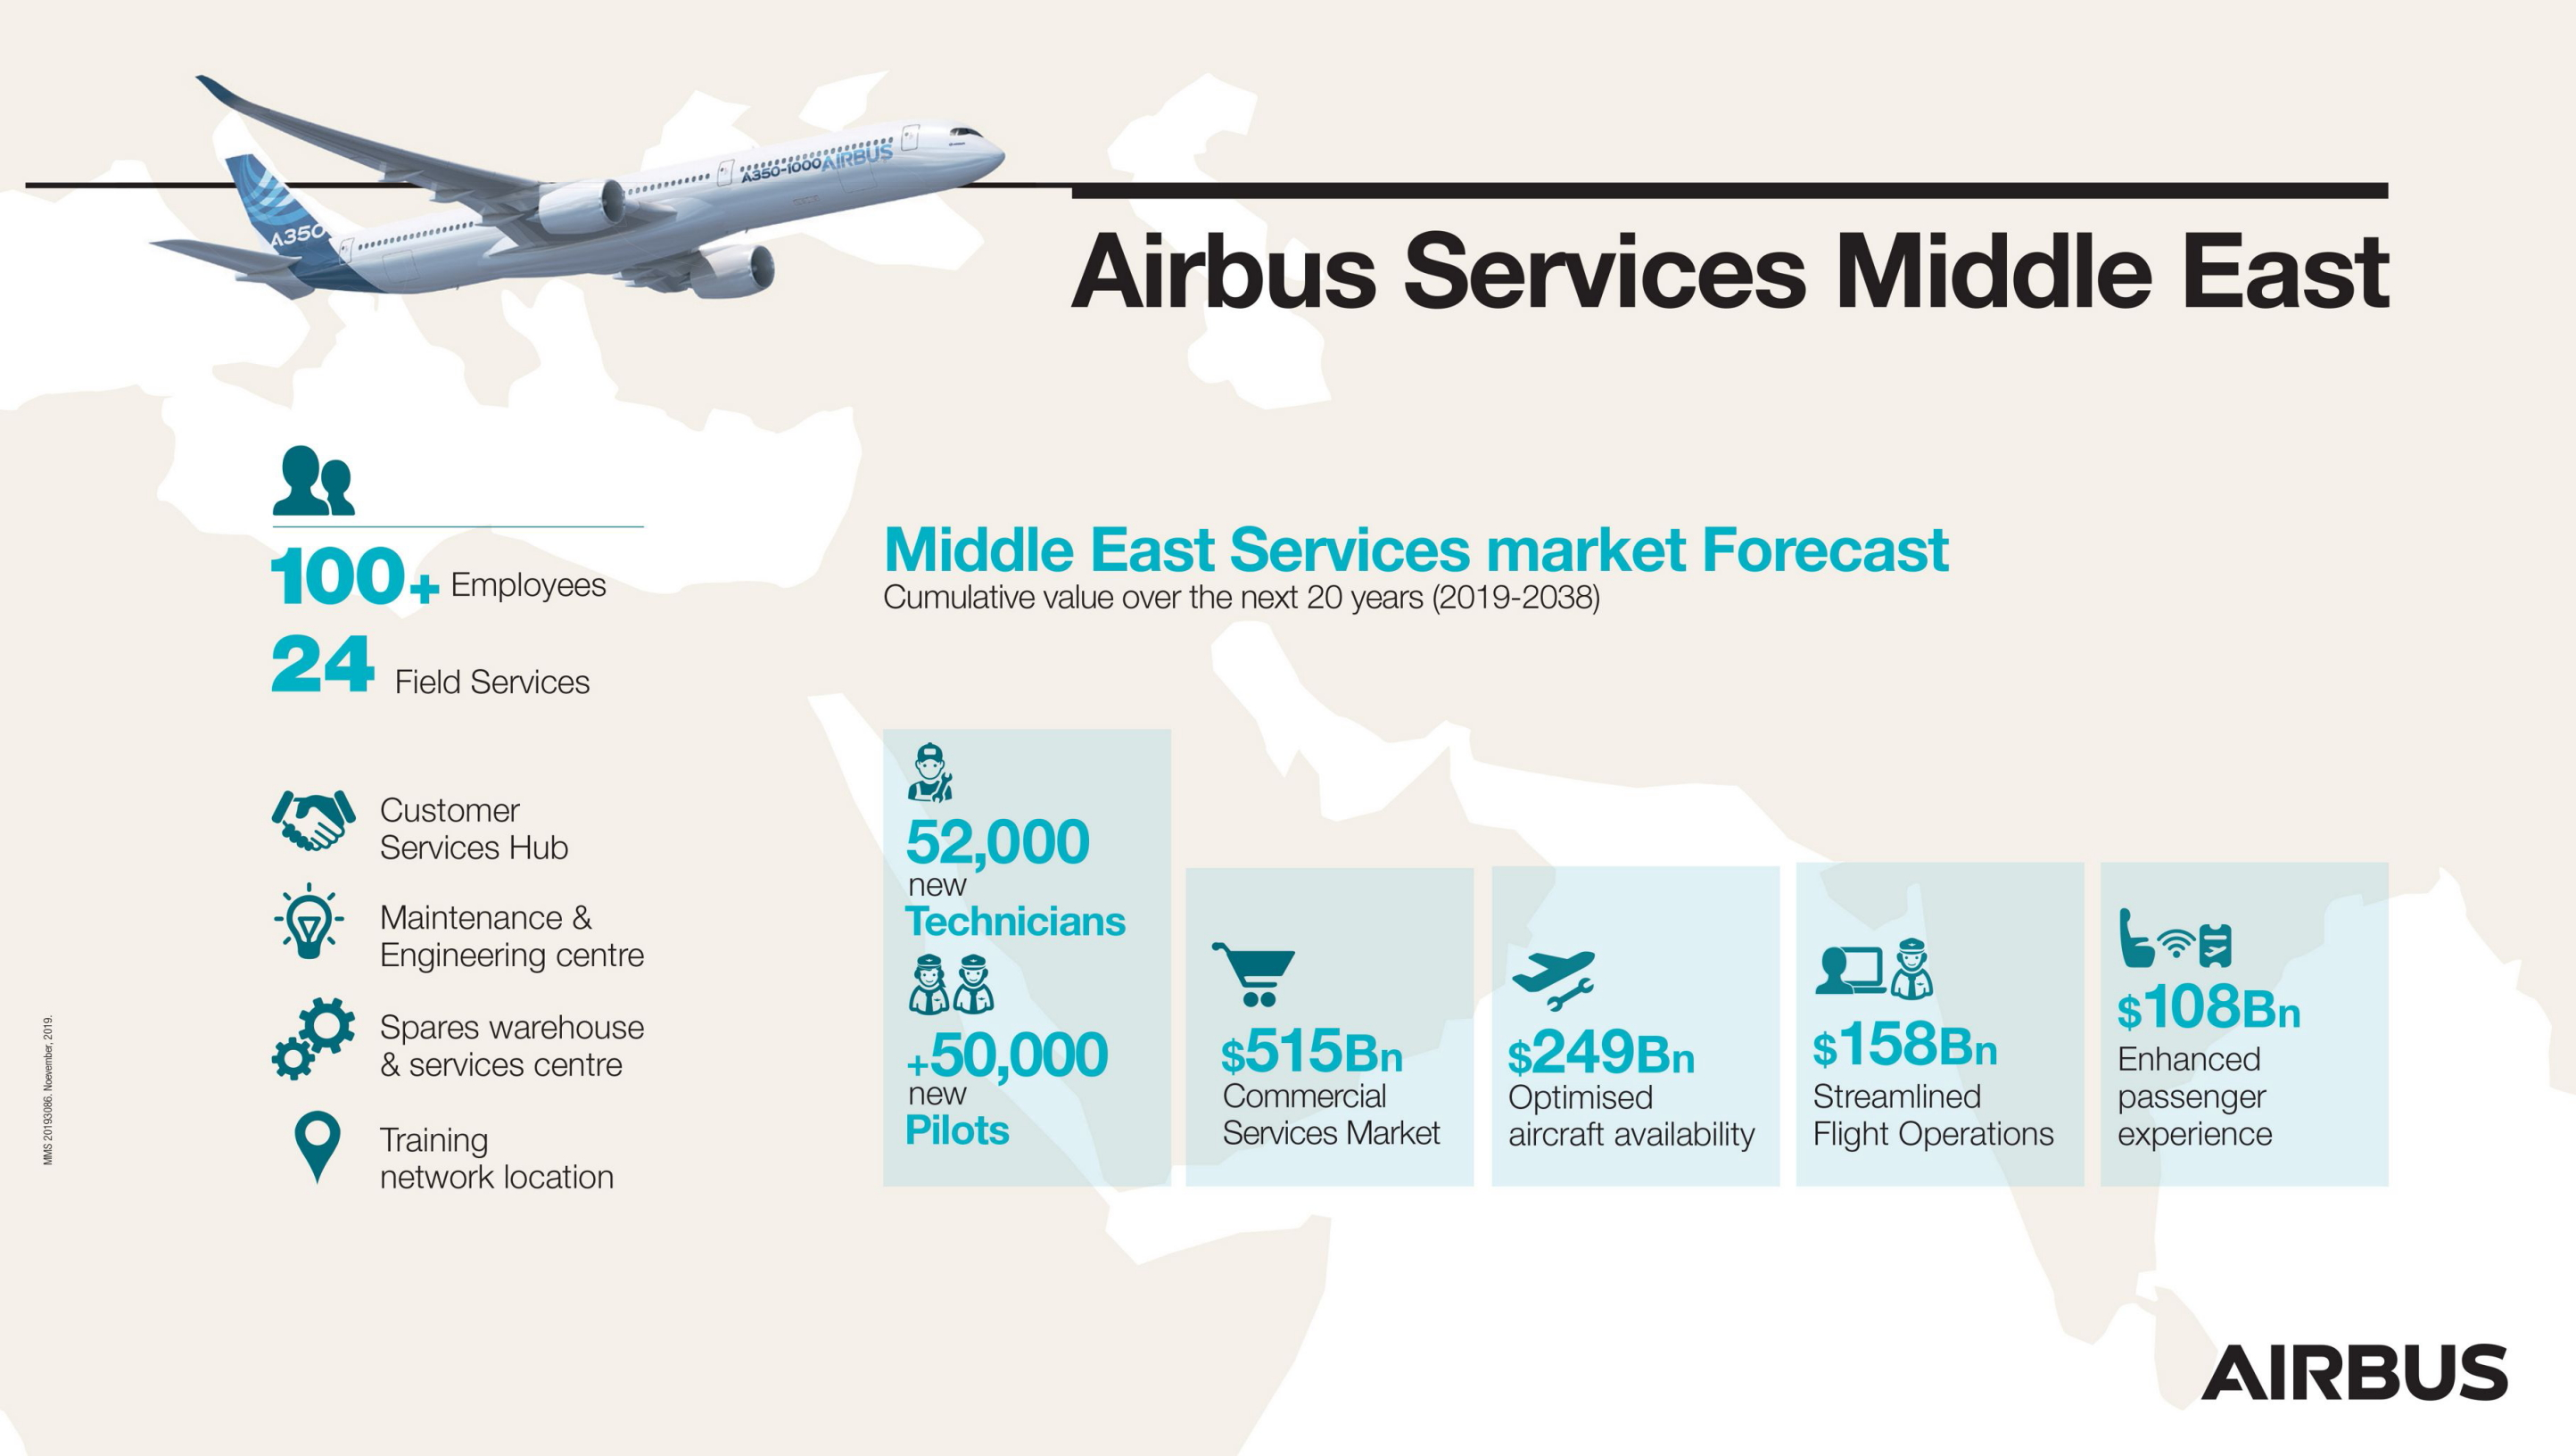 According to the 2019 Airbus Global Market Forecast (GMF), the fleet size of operators from all regions serving the UAE will nearly treble to some 1,730 aircraft by 2038 from around 630 today. This includes 750 Small category aircraft like the A320 and A321, and 980 Medium and Large aircraft like the A330neo and A350 serving the UAE market in the next two decades. UAE O&D passenger traffic is forecast to grow 5.8% per annum over the next 20 years. Click to enlarge.